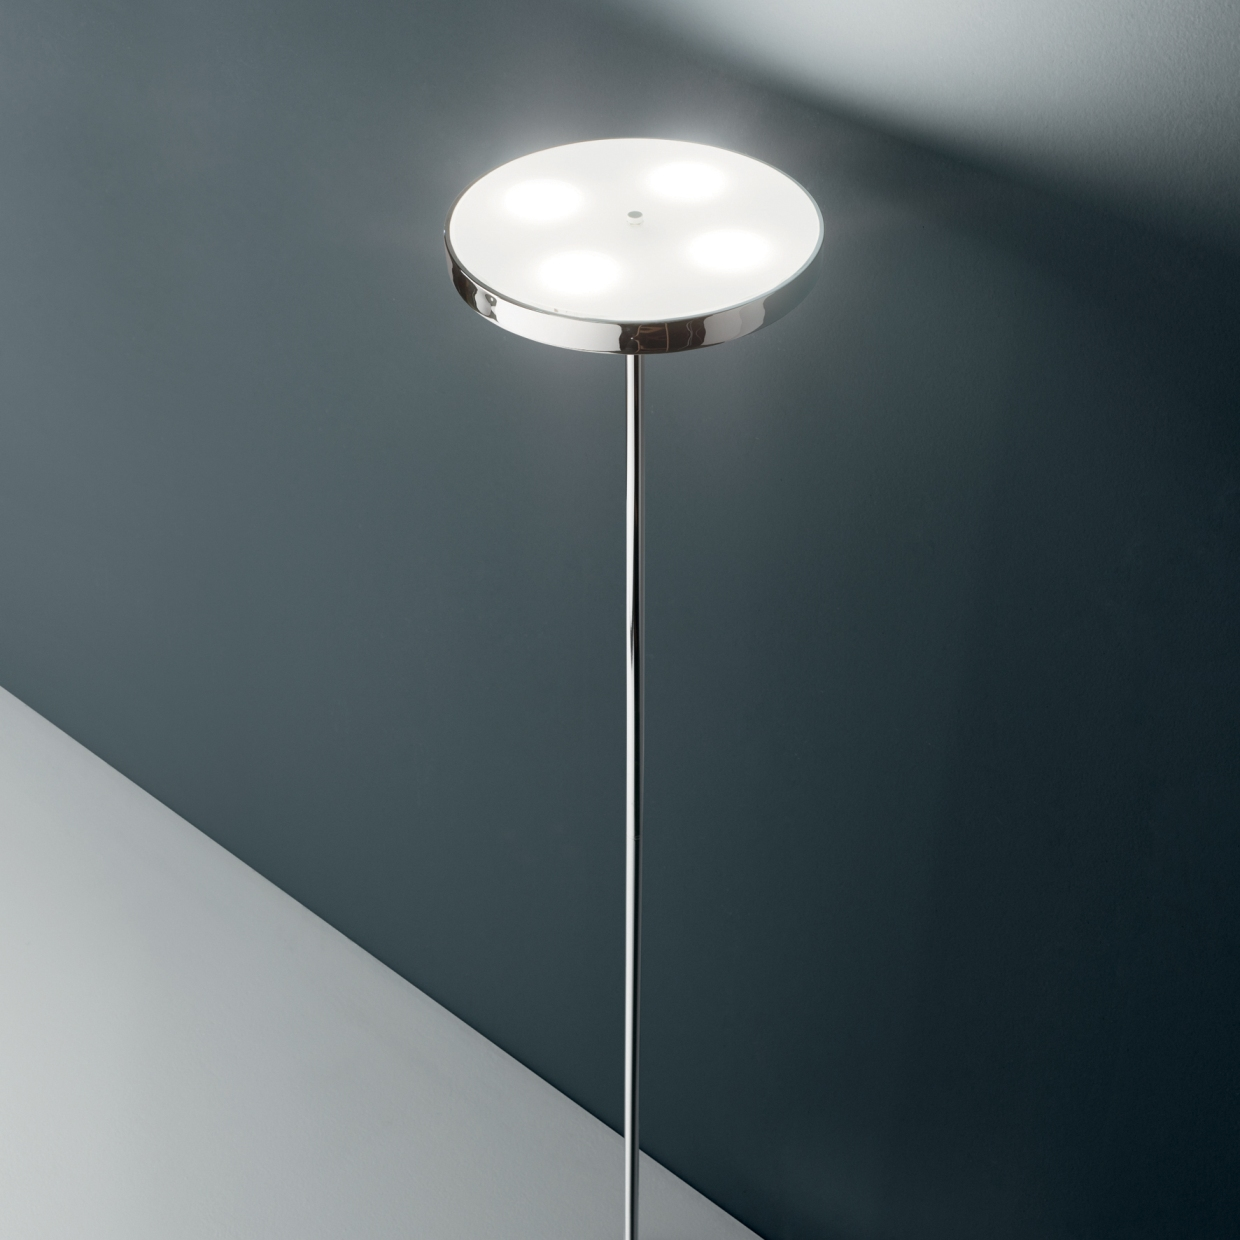 LED Stojací lampa Ideal Lux Colonna PT4 cromo 177212 chromová